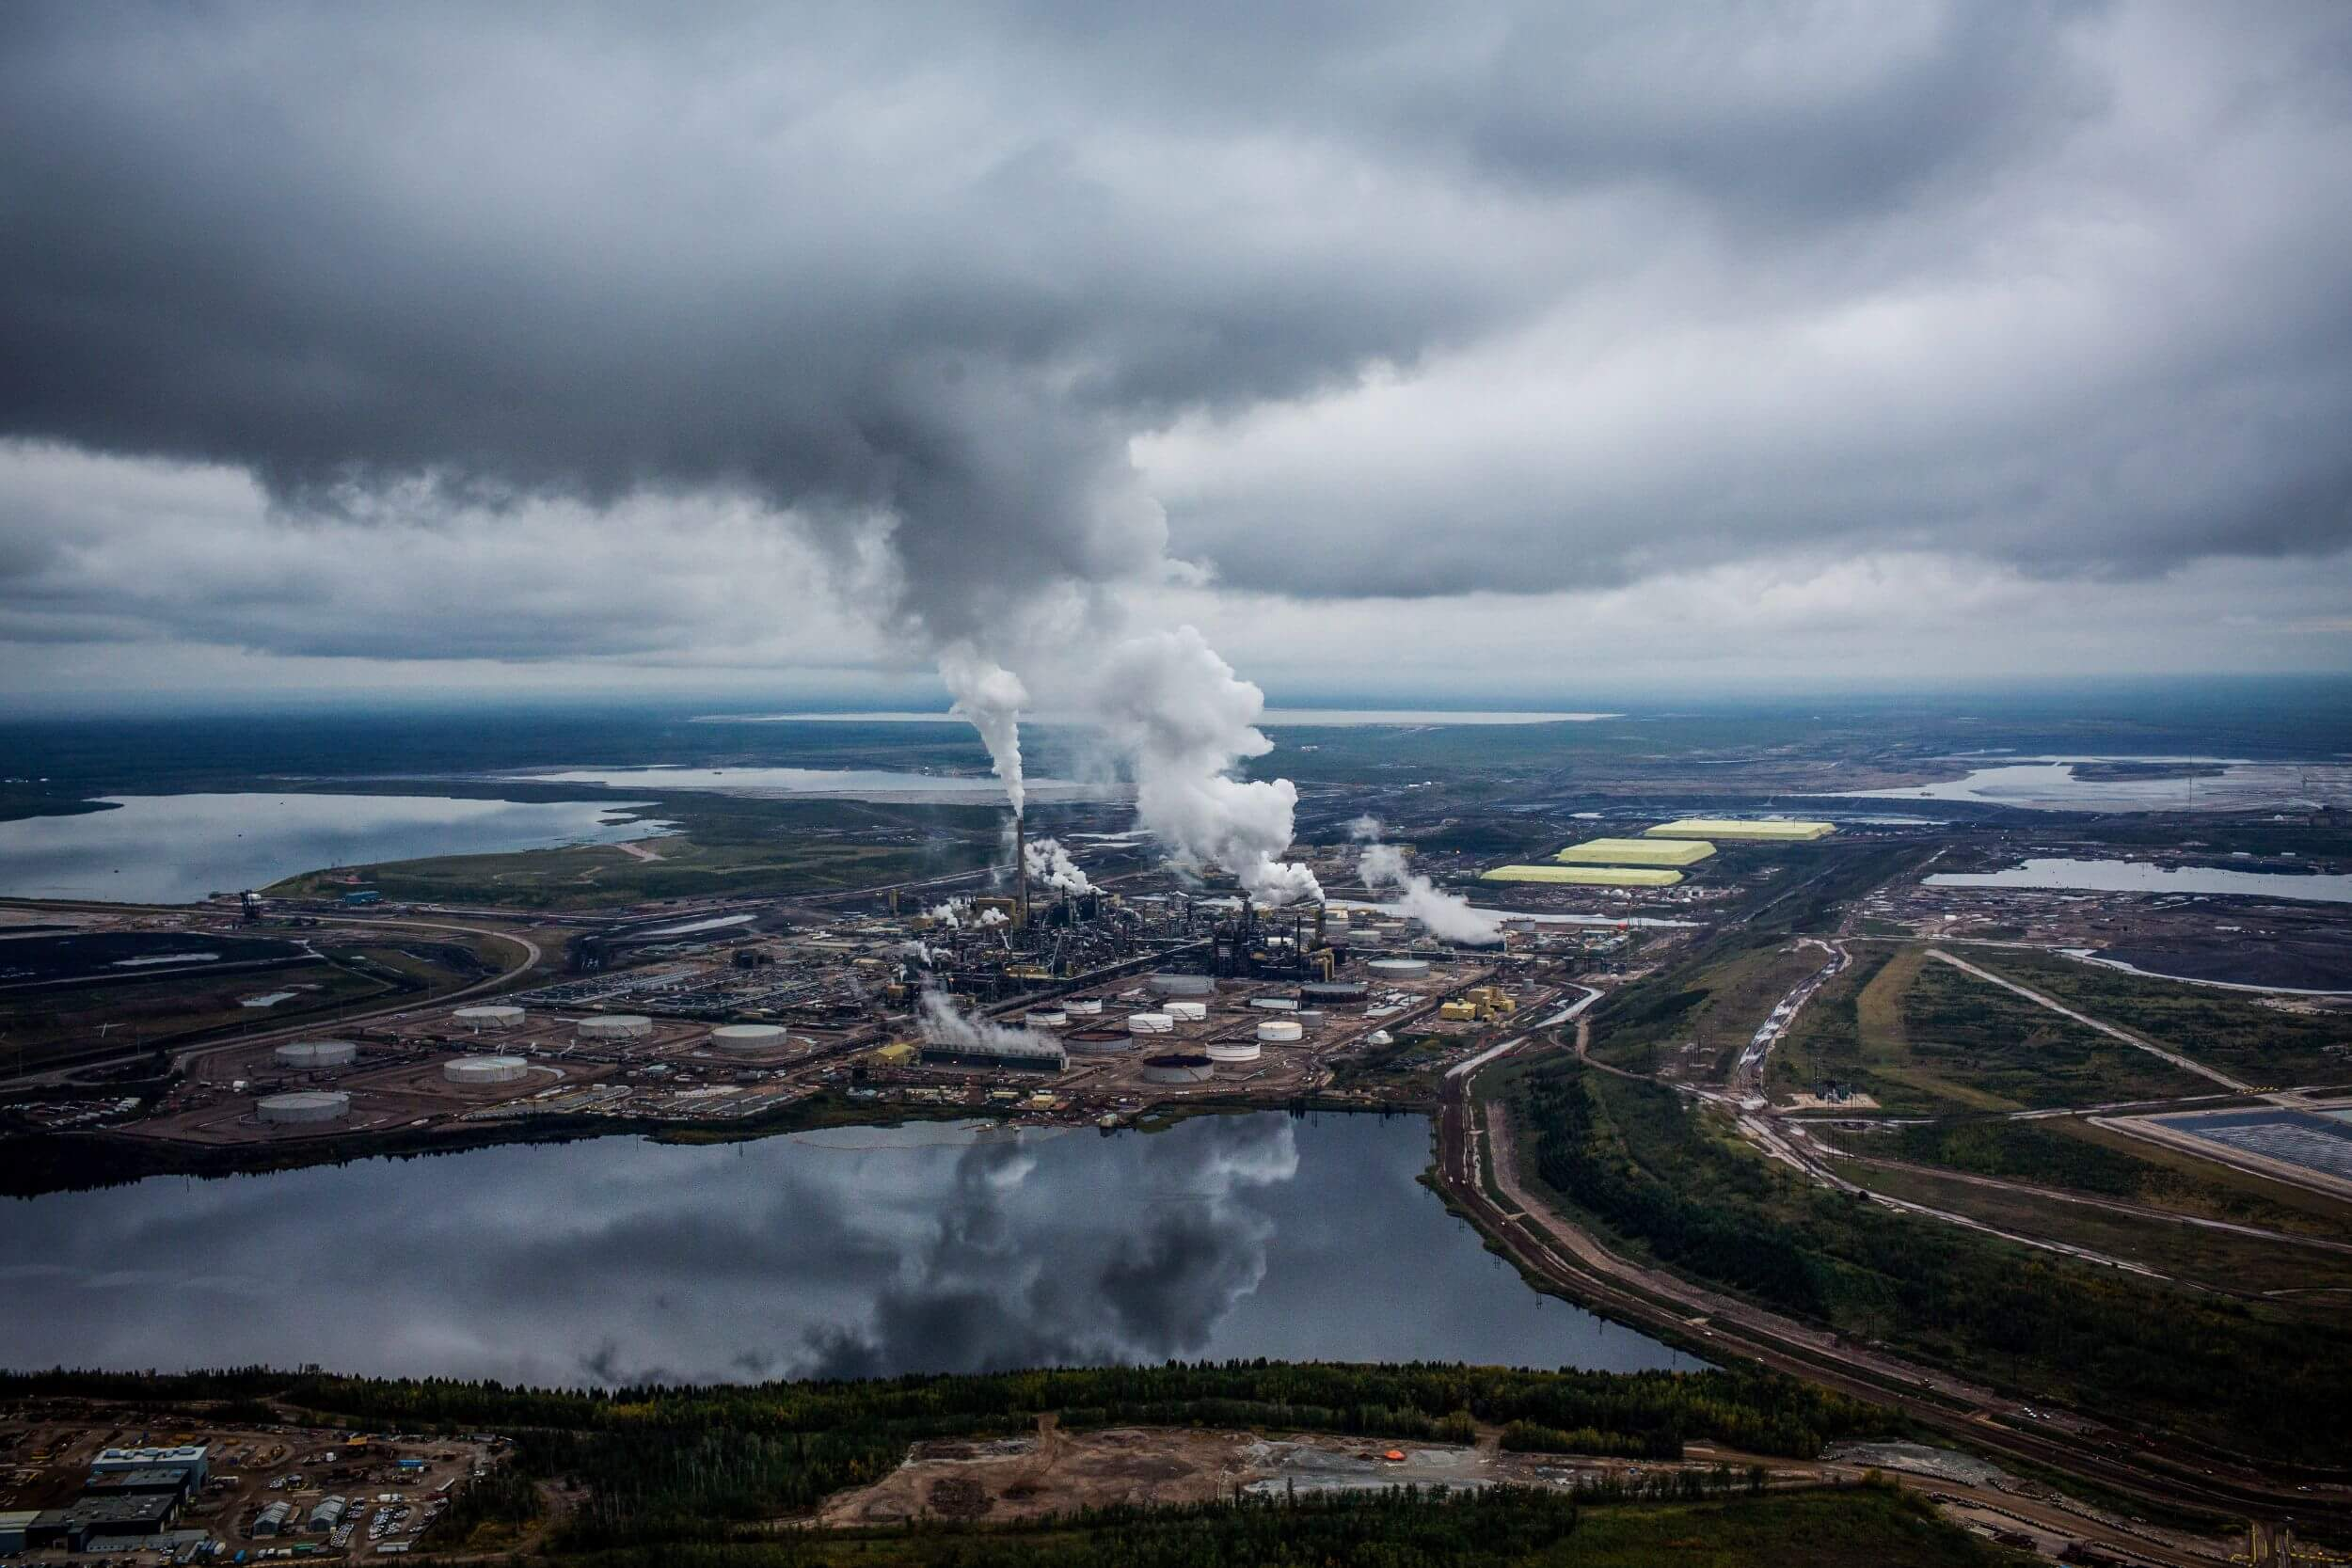 An aerial shot of a landscape of land and water, with cloudy skies above. In the center, an industrial plant, smoke rising.